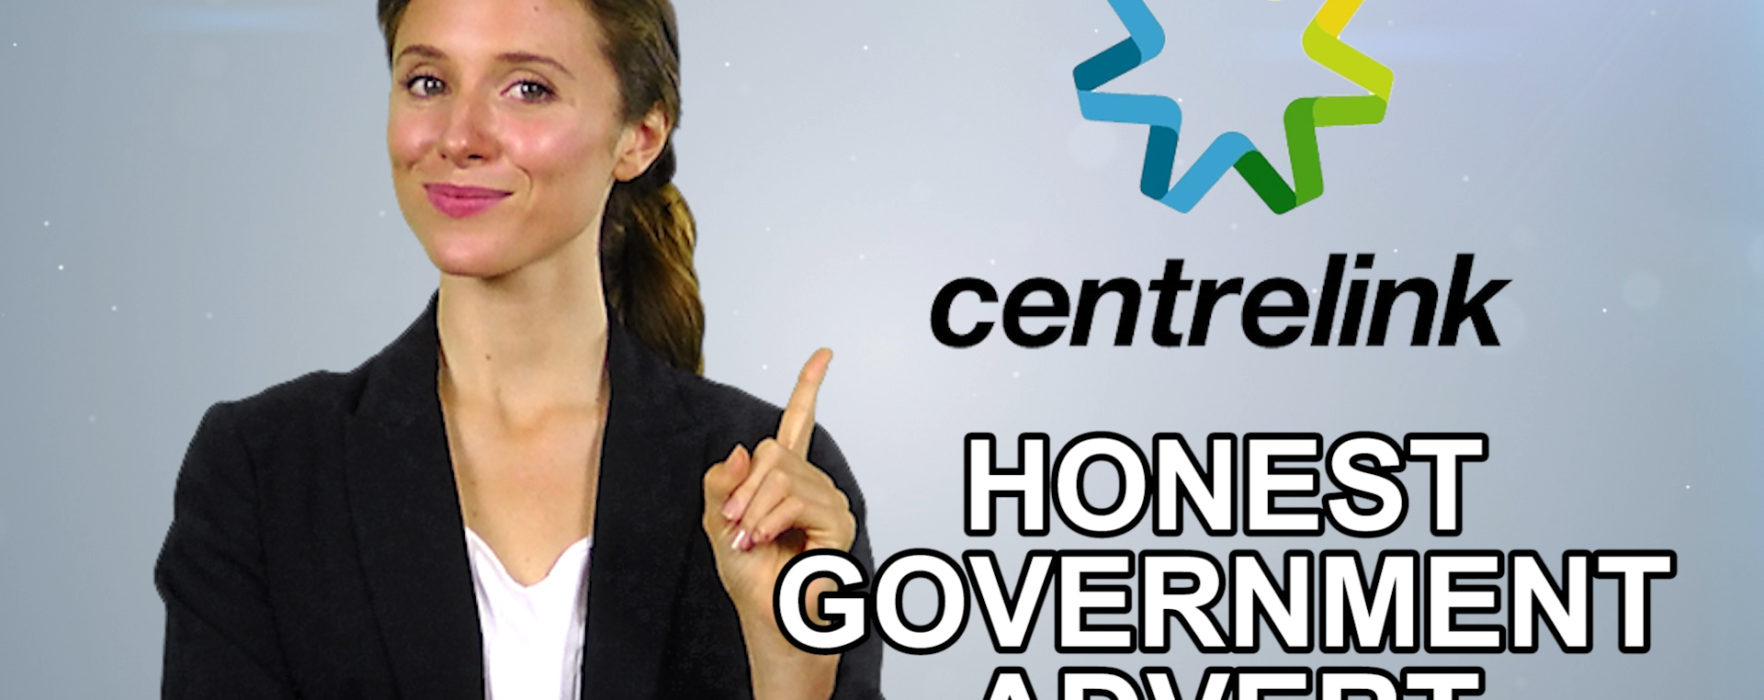 Centrelink Fail – Honest Government Advert